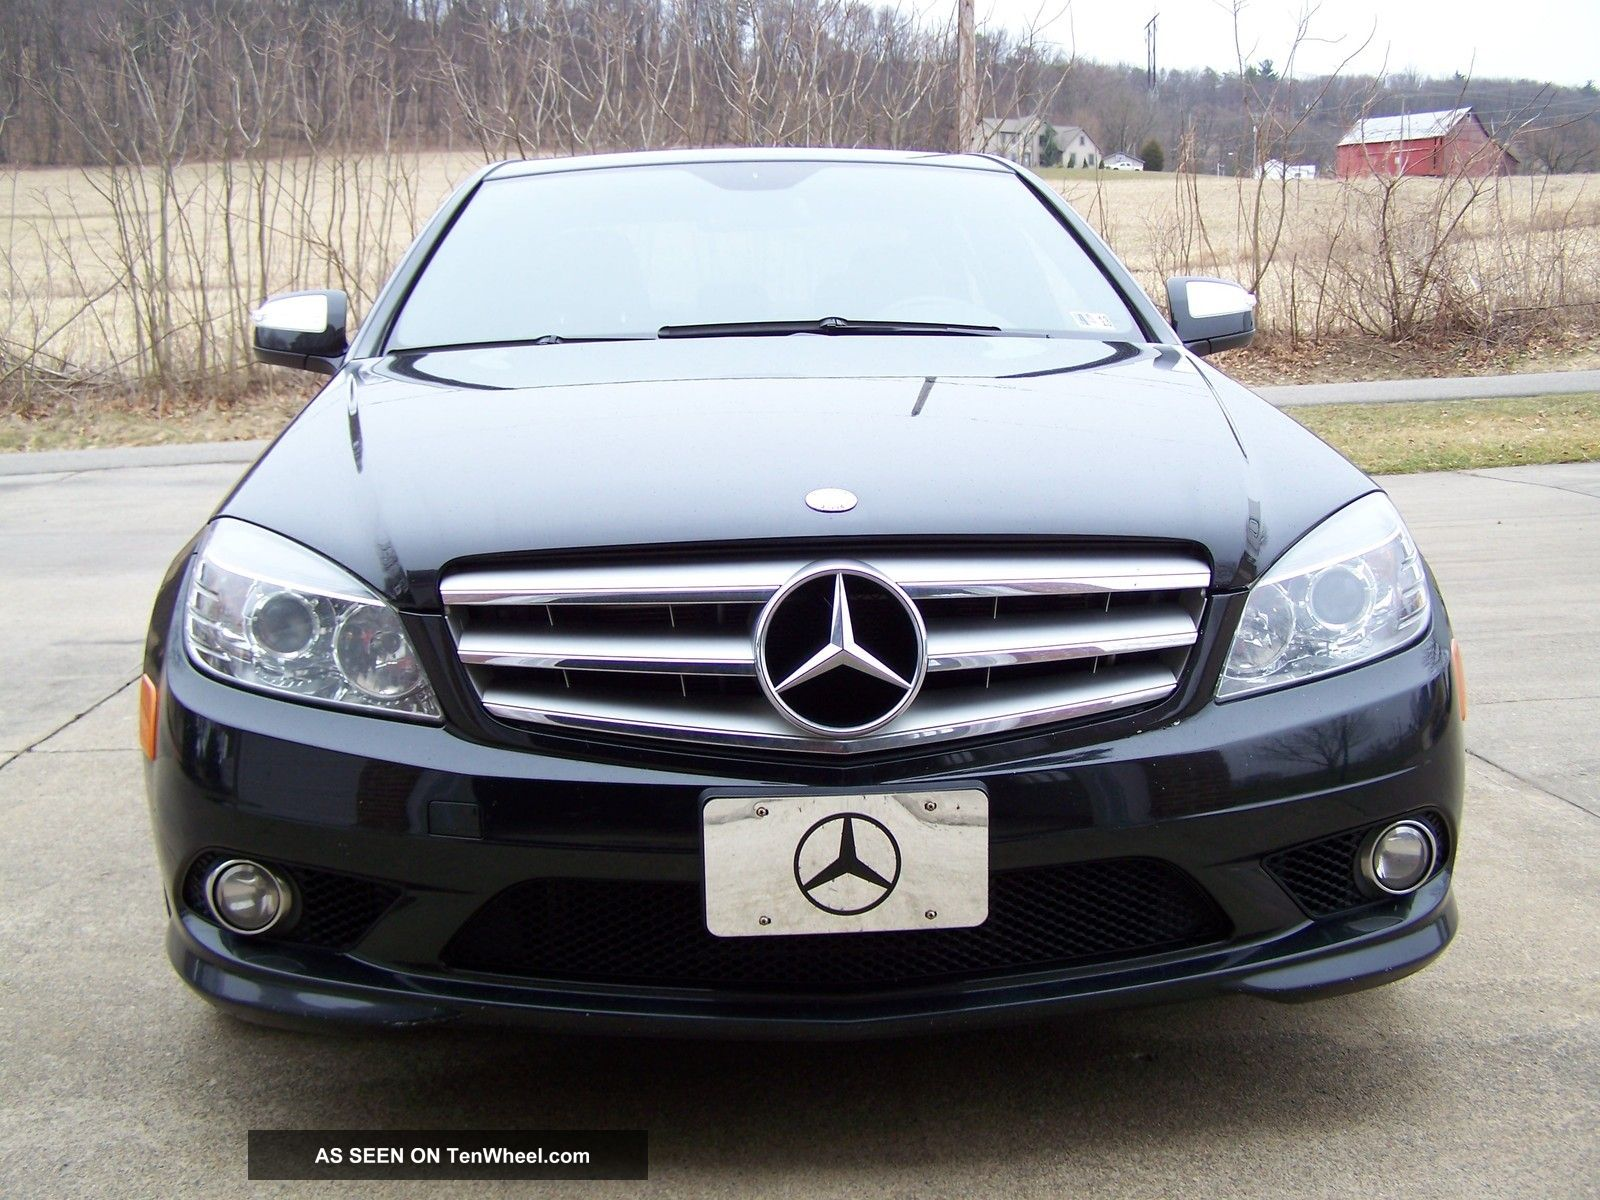 2008 mercedes benz c300 4matic sport sedan 4 door 3 0l for Mercedes benz c300 sport 4matic